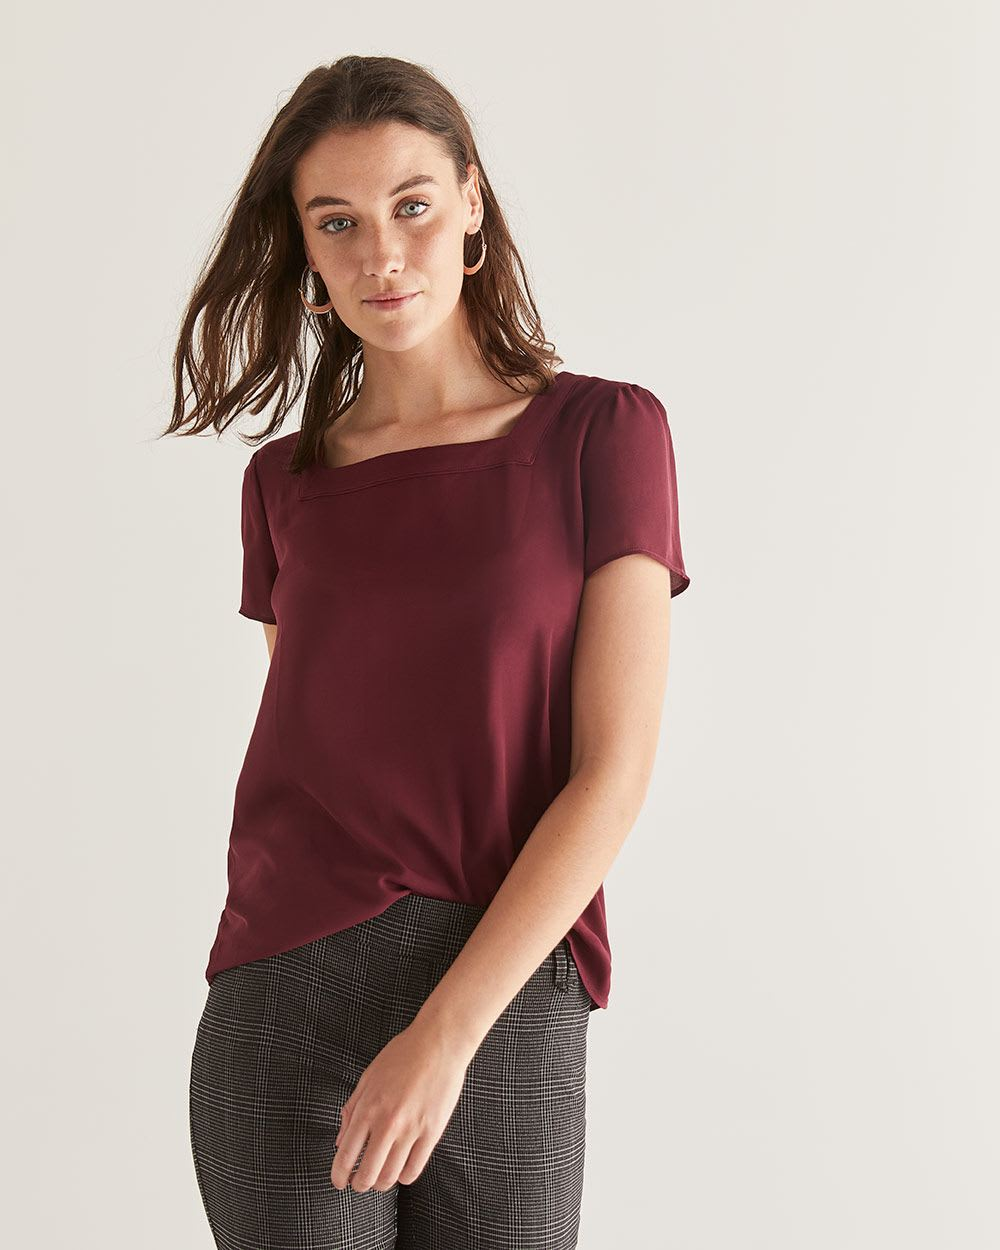 Short Sleeve Blouse with Square Neckline